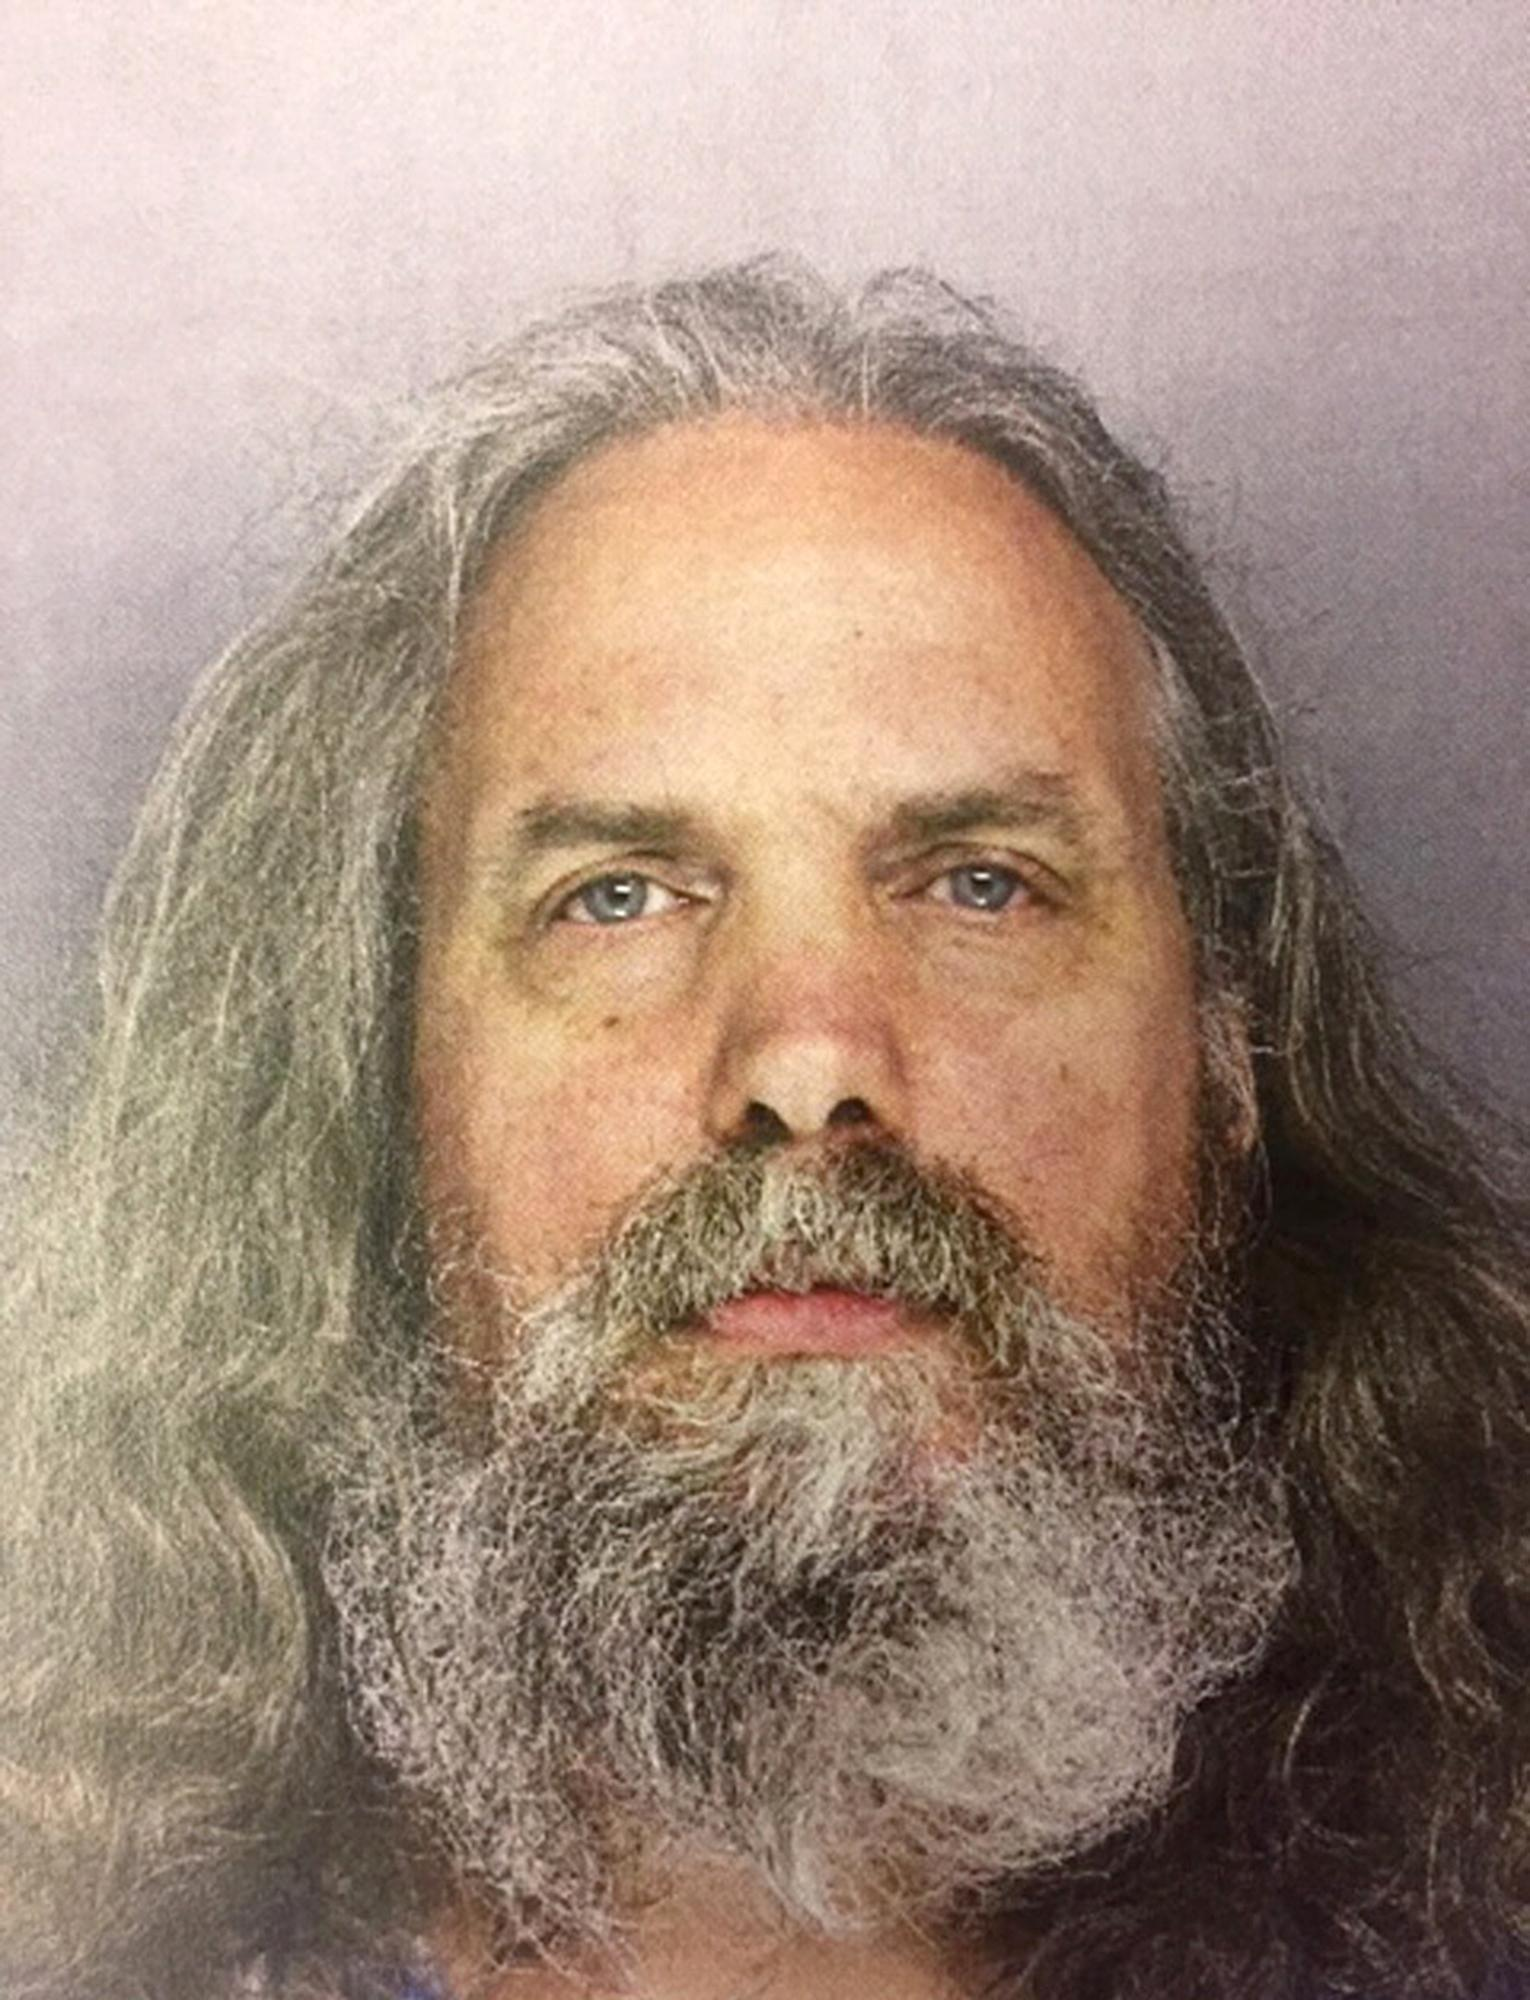 FILE - This undated file photo provided by the Lower Southampton Police Department shows Lee Kaplan of Feasterville, Pa.  (Lower Southampton Police Department via AP, File)